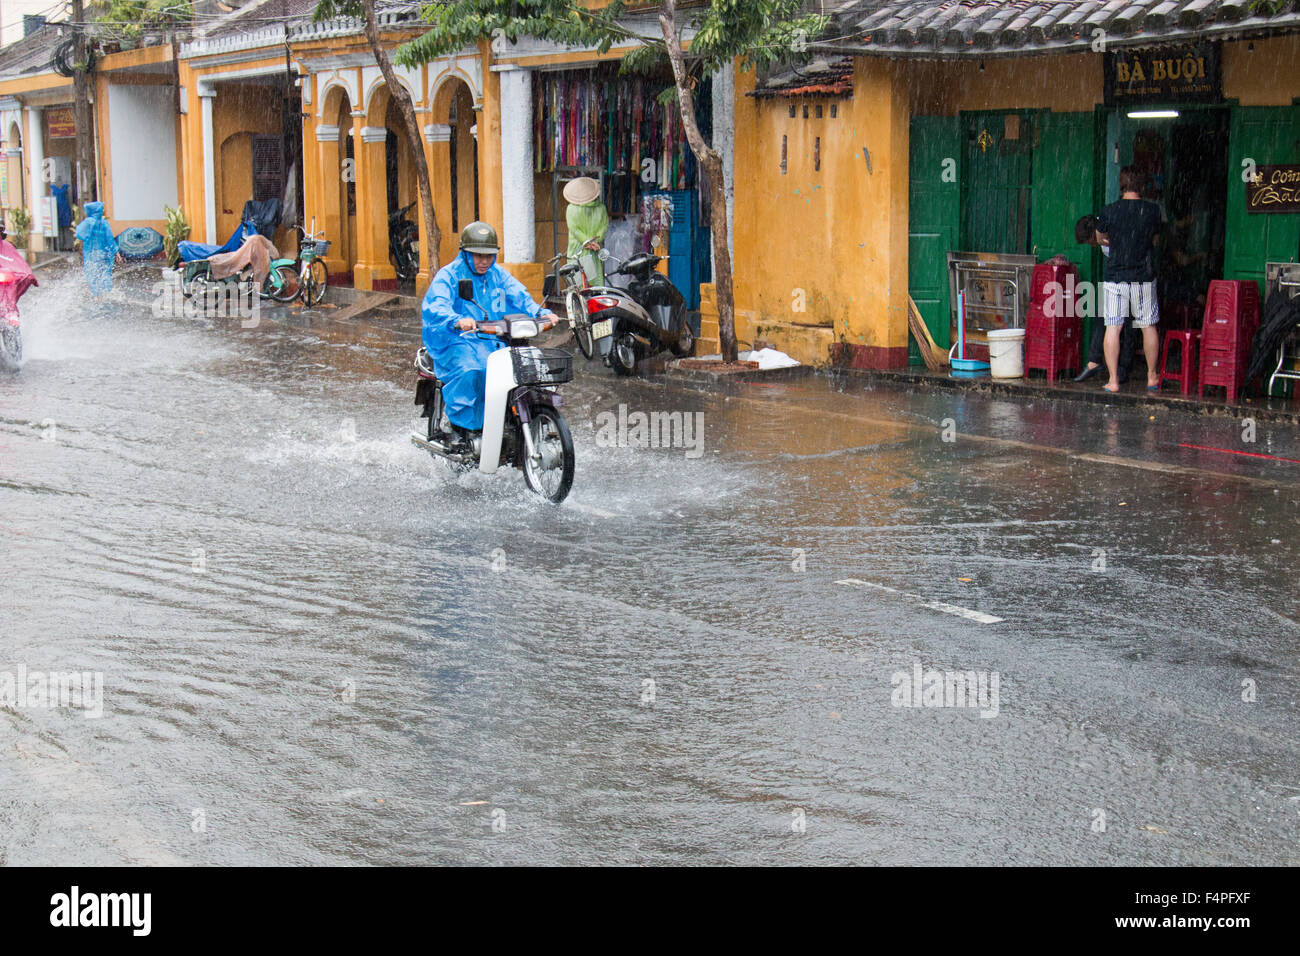 Hoi An ancient town Vietnam, biker on scooter motorcycle rides through flooded road during thunderstorms,Vietnam - Stock Image